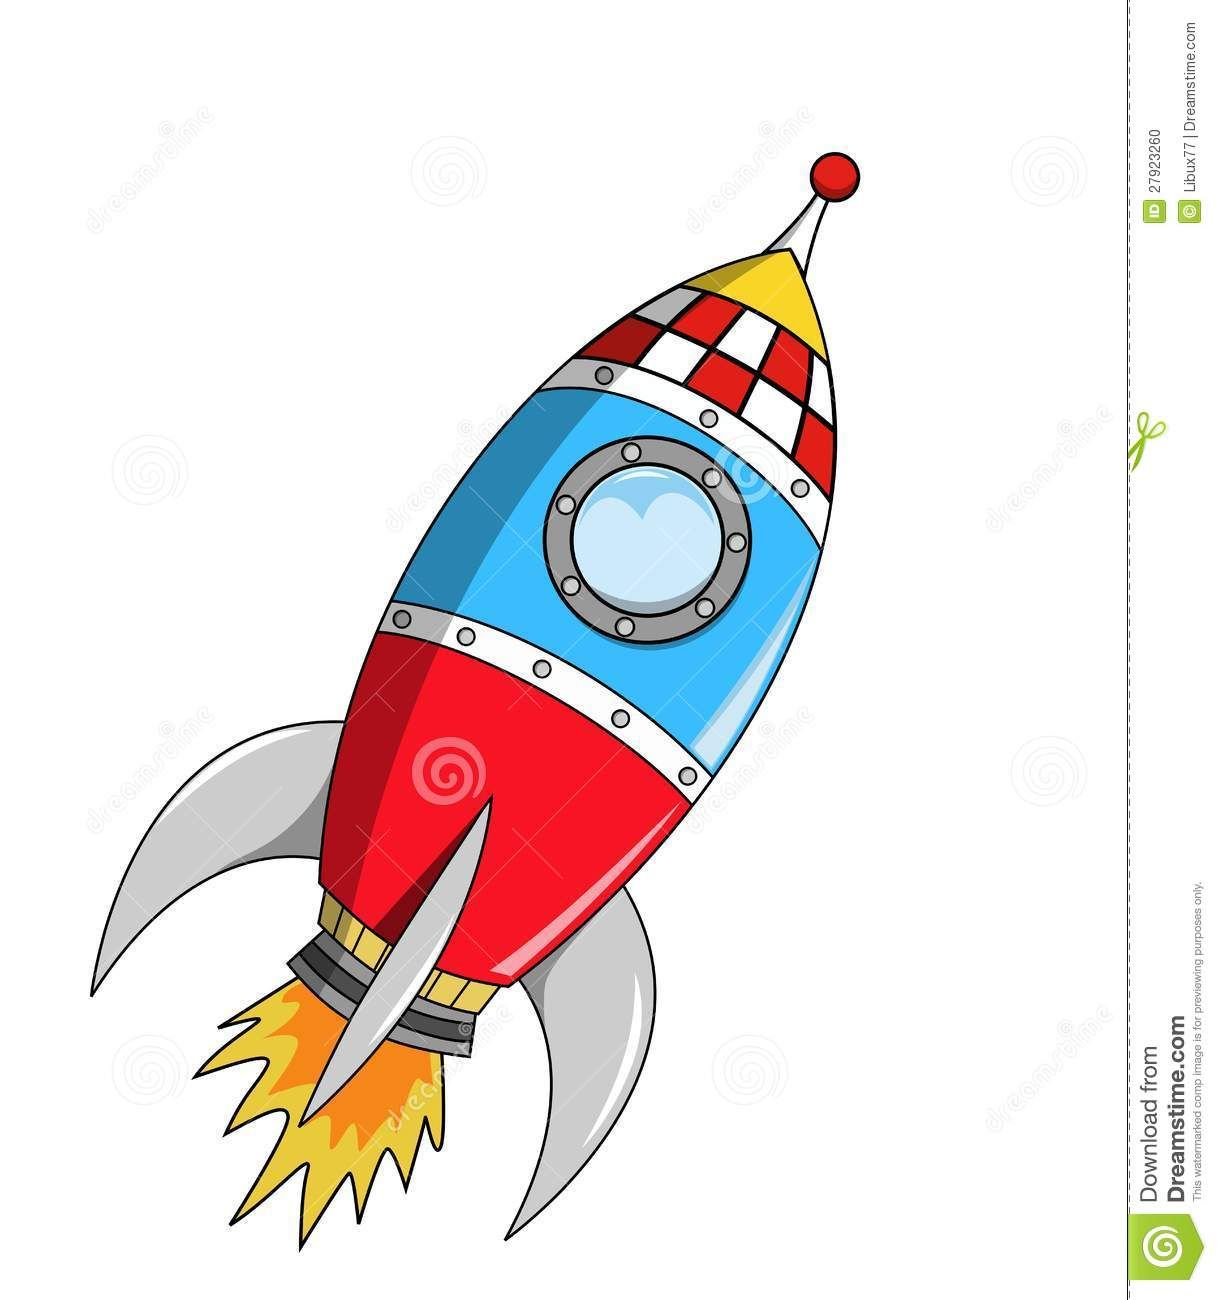 cartoon space rocket on mission download from over 42